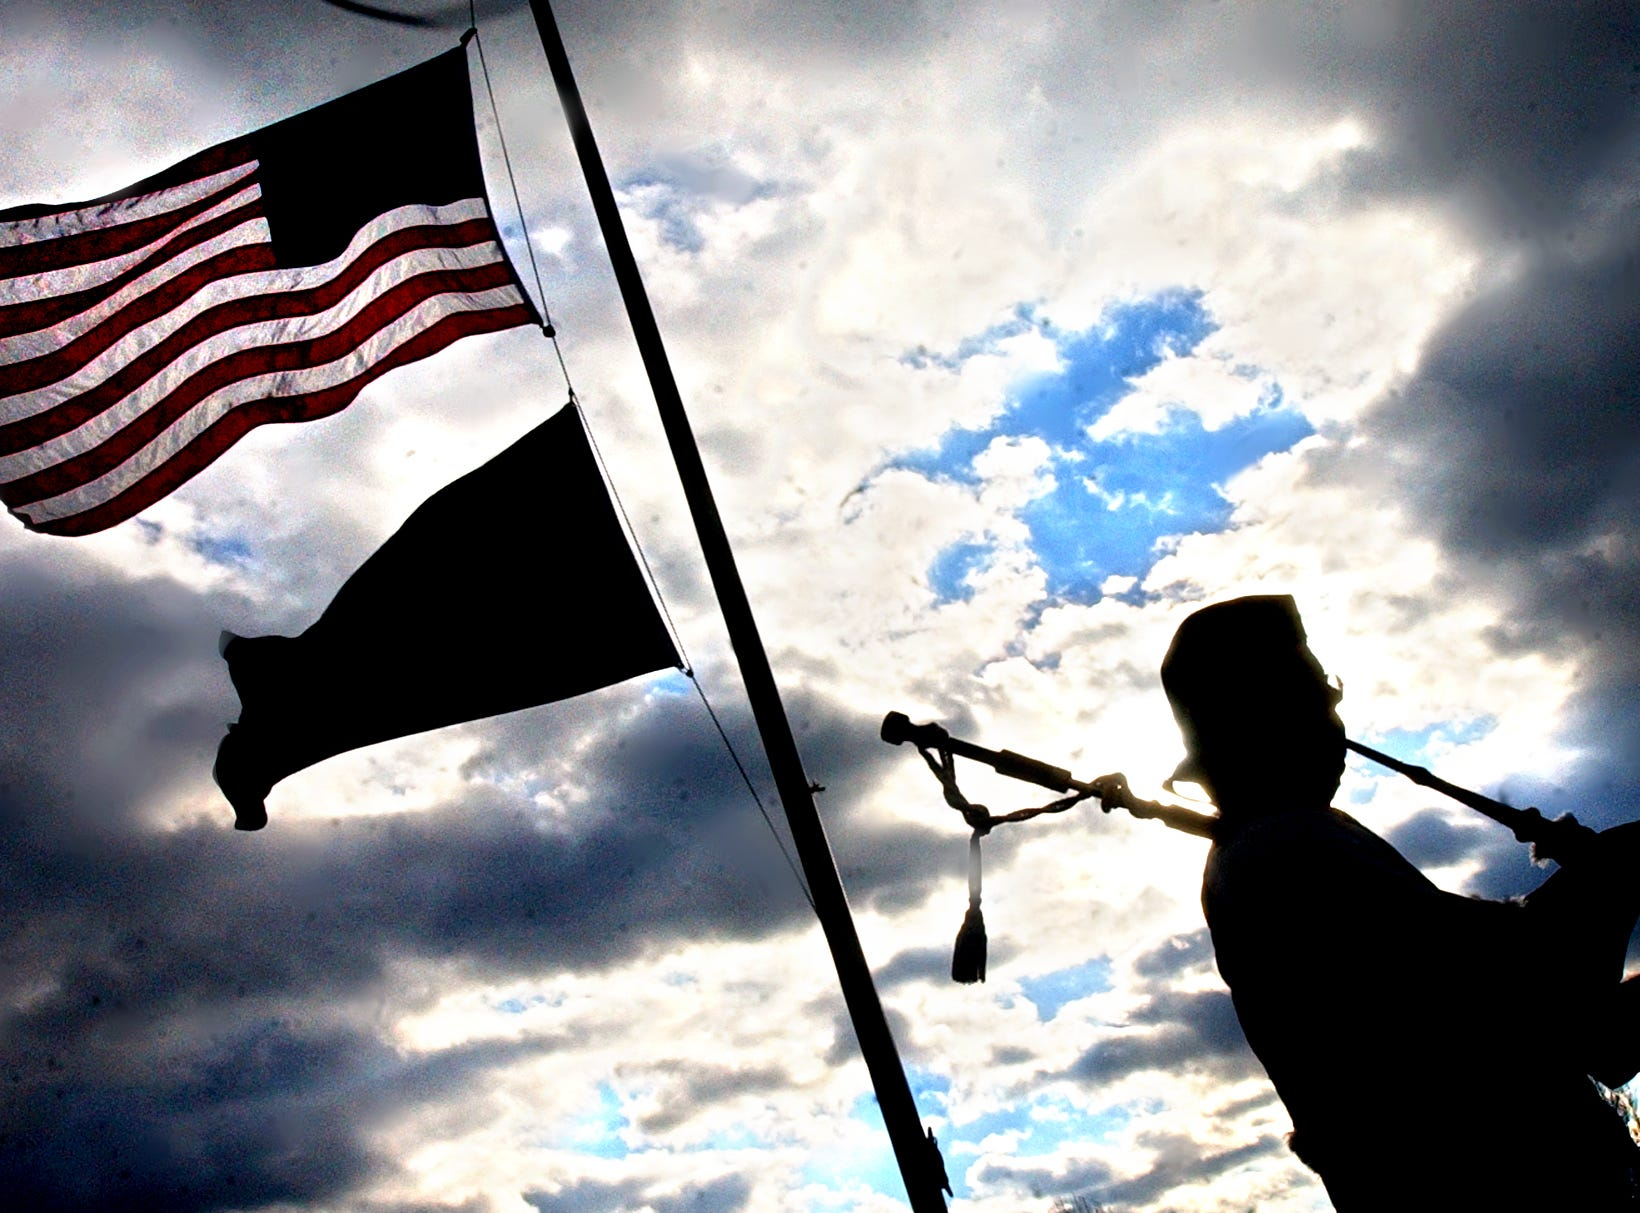 A man practices bagpipes he played at the service for U.S. Marine Cpl. Michael R. Cohen,  23, of Jacobus, who died Nov. 22, 2004, as a result of enemy action in Al Anbar Province, Iraq. Cohen was assigned to 1st Battalion, 3rd Marine Regiment, 3rd Marine Division, III Marine Expeditionary Force, Marine Corps Base Hawaii.